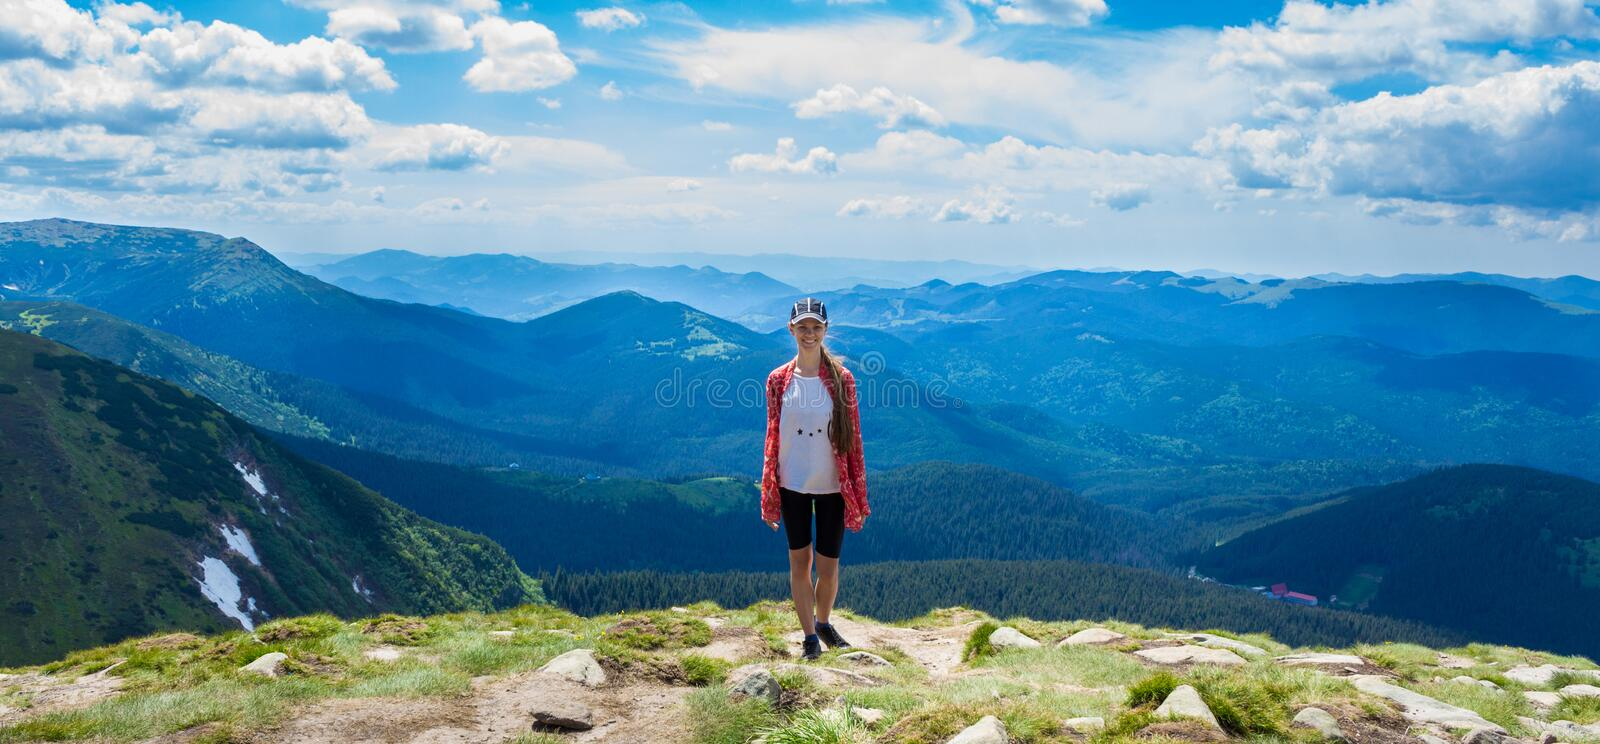 Woman hiking in mountains at sunny day royalty free stock photography